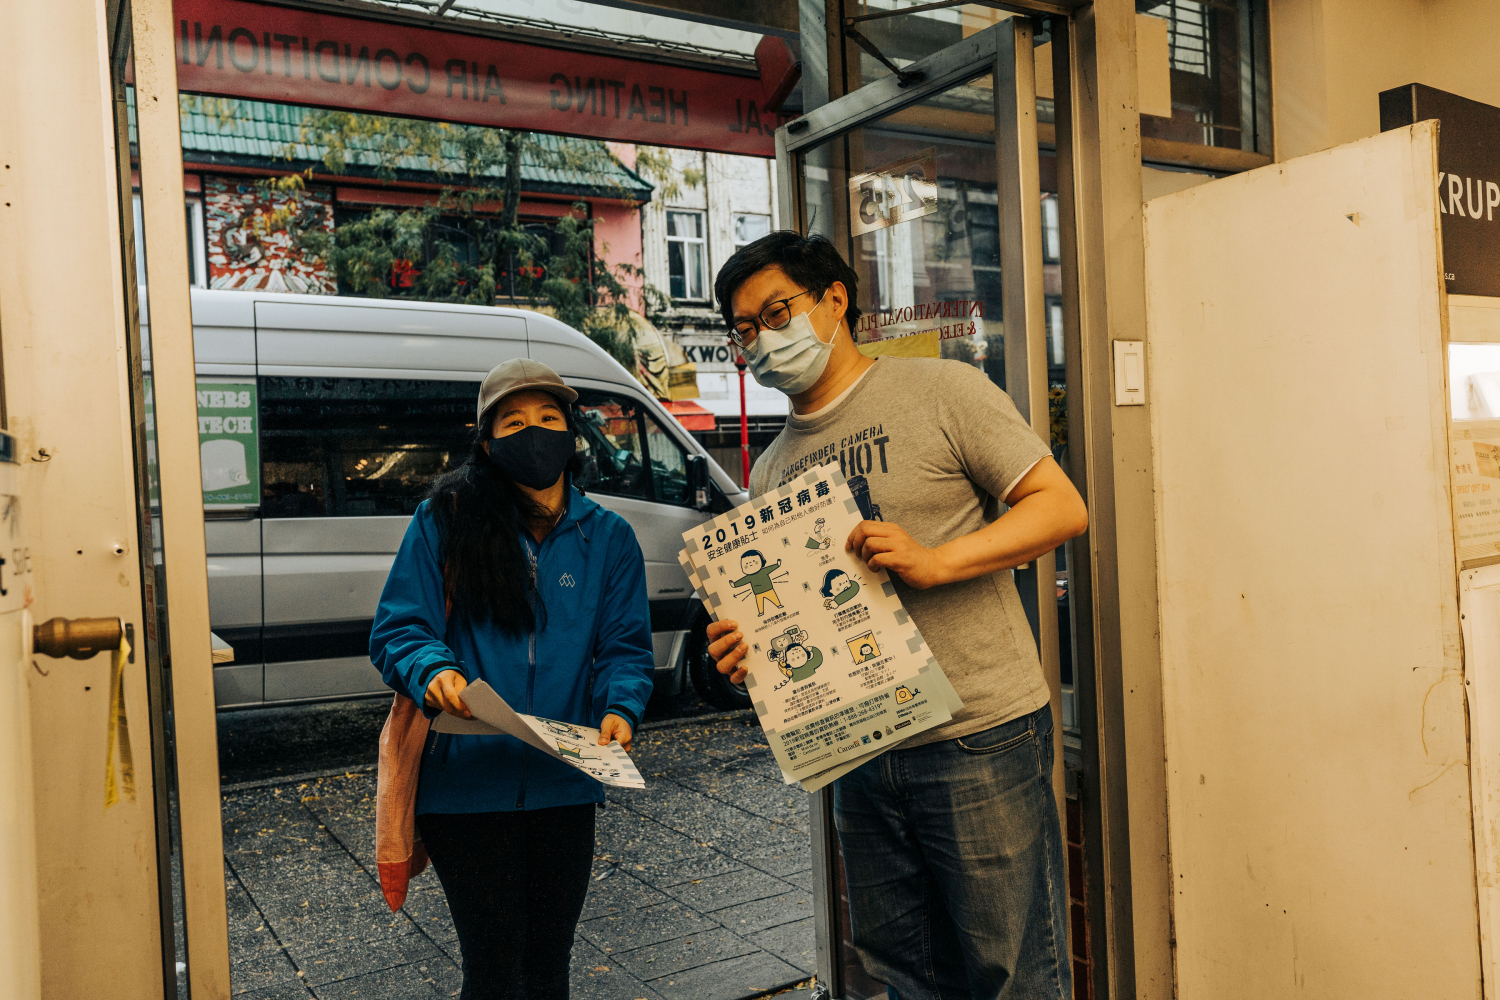 Carmut from hua foundation passes out posters to a business owner in Chinatown.